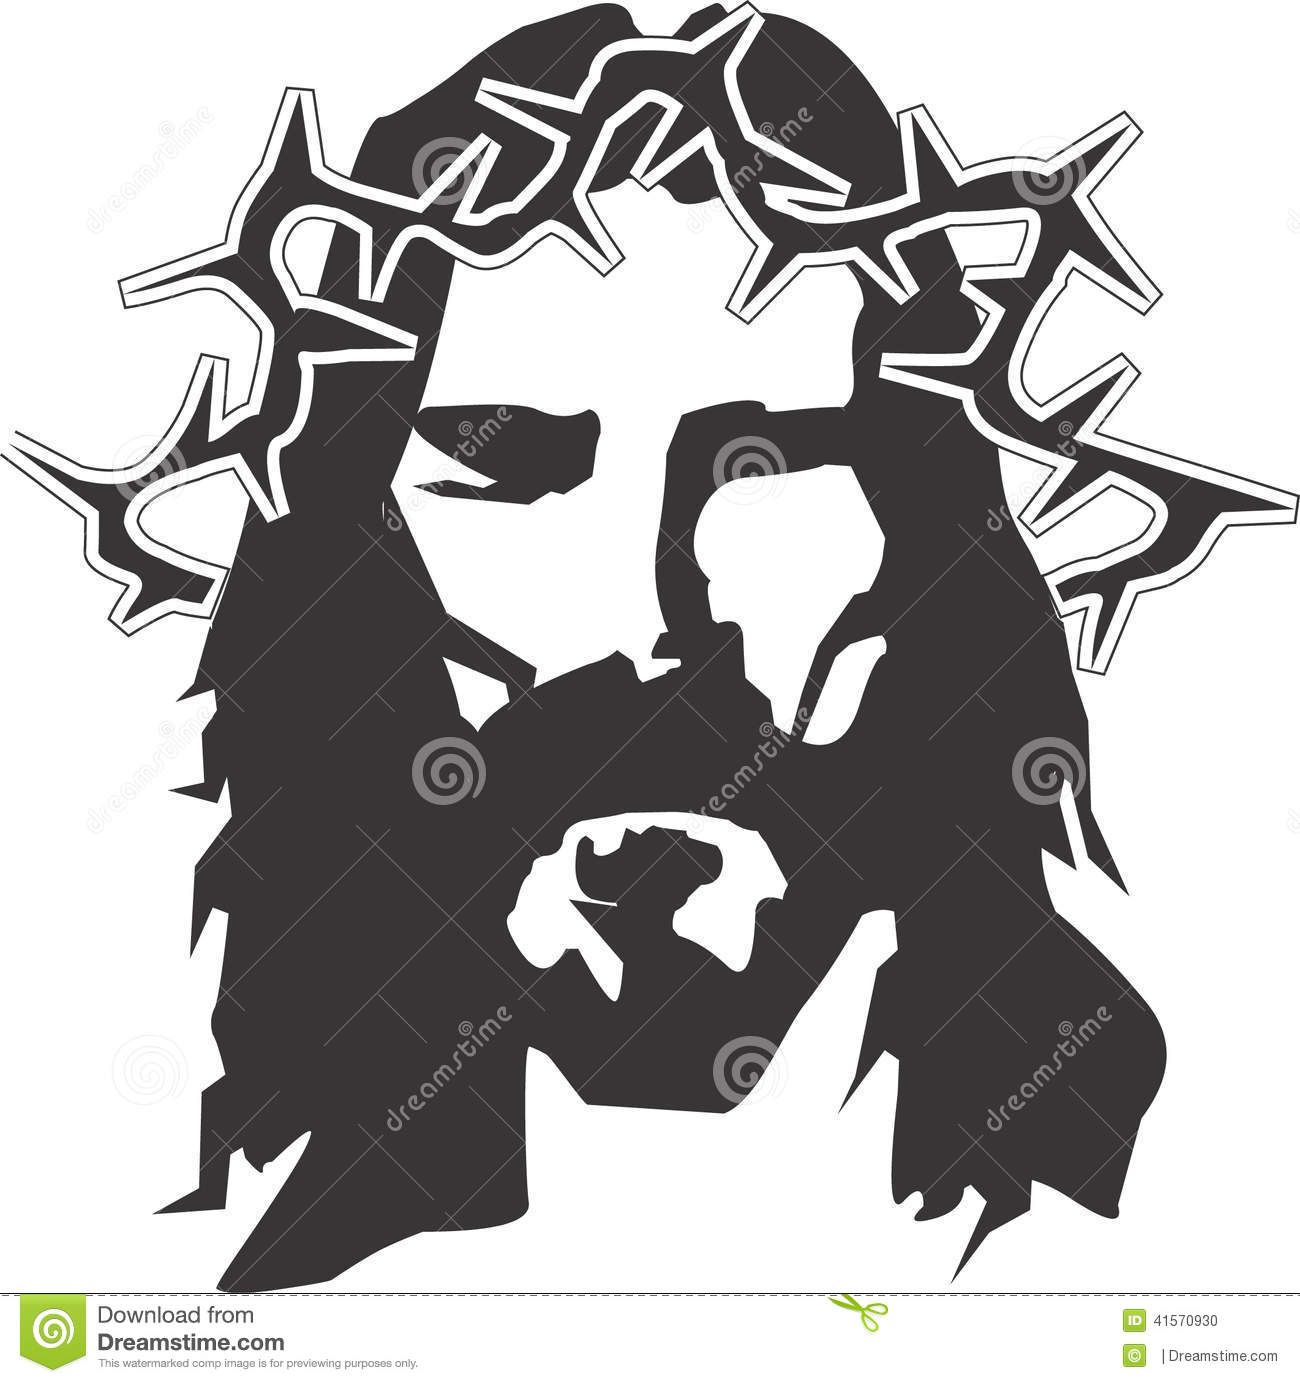 Jesus clipart face. Images for black and